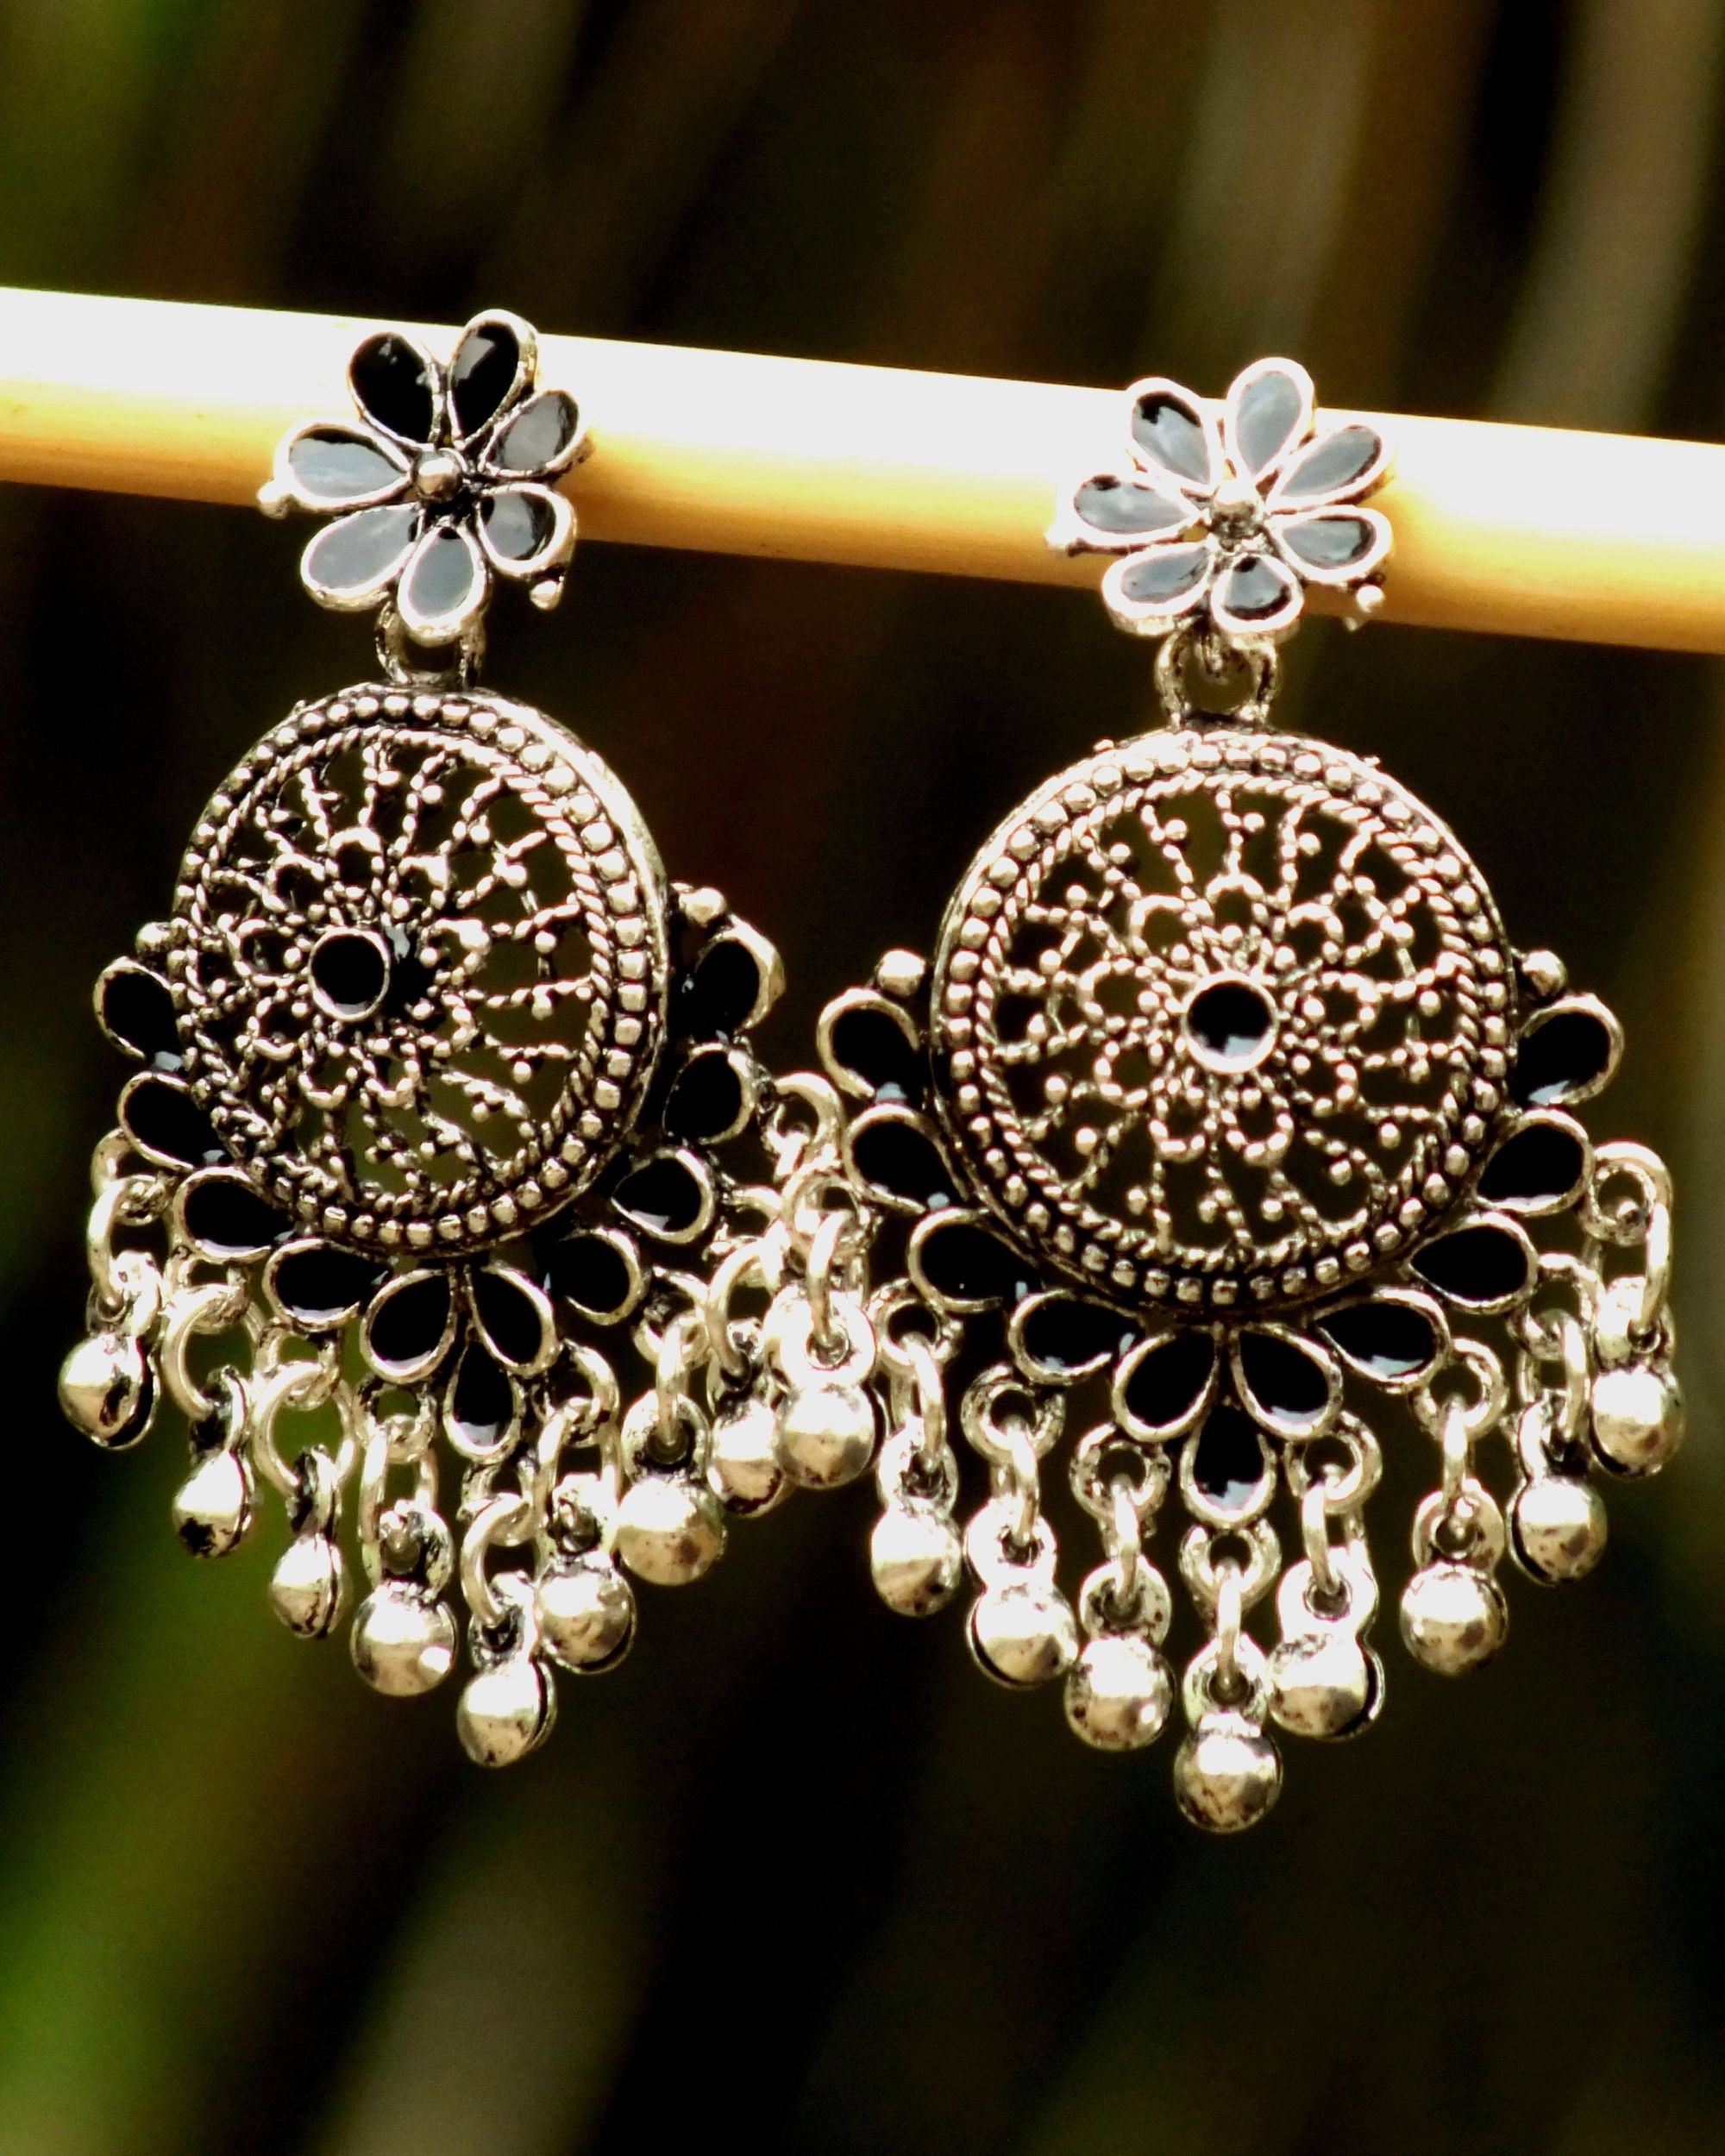 Black and silver flower earrings